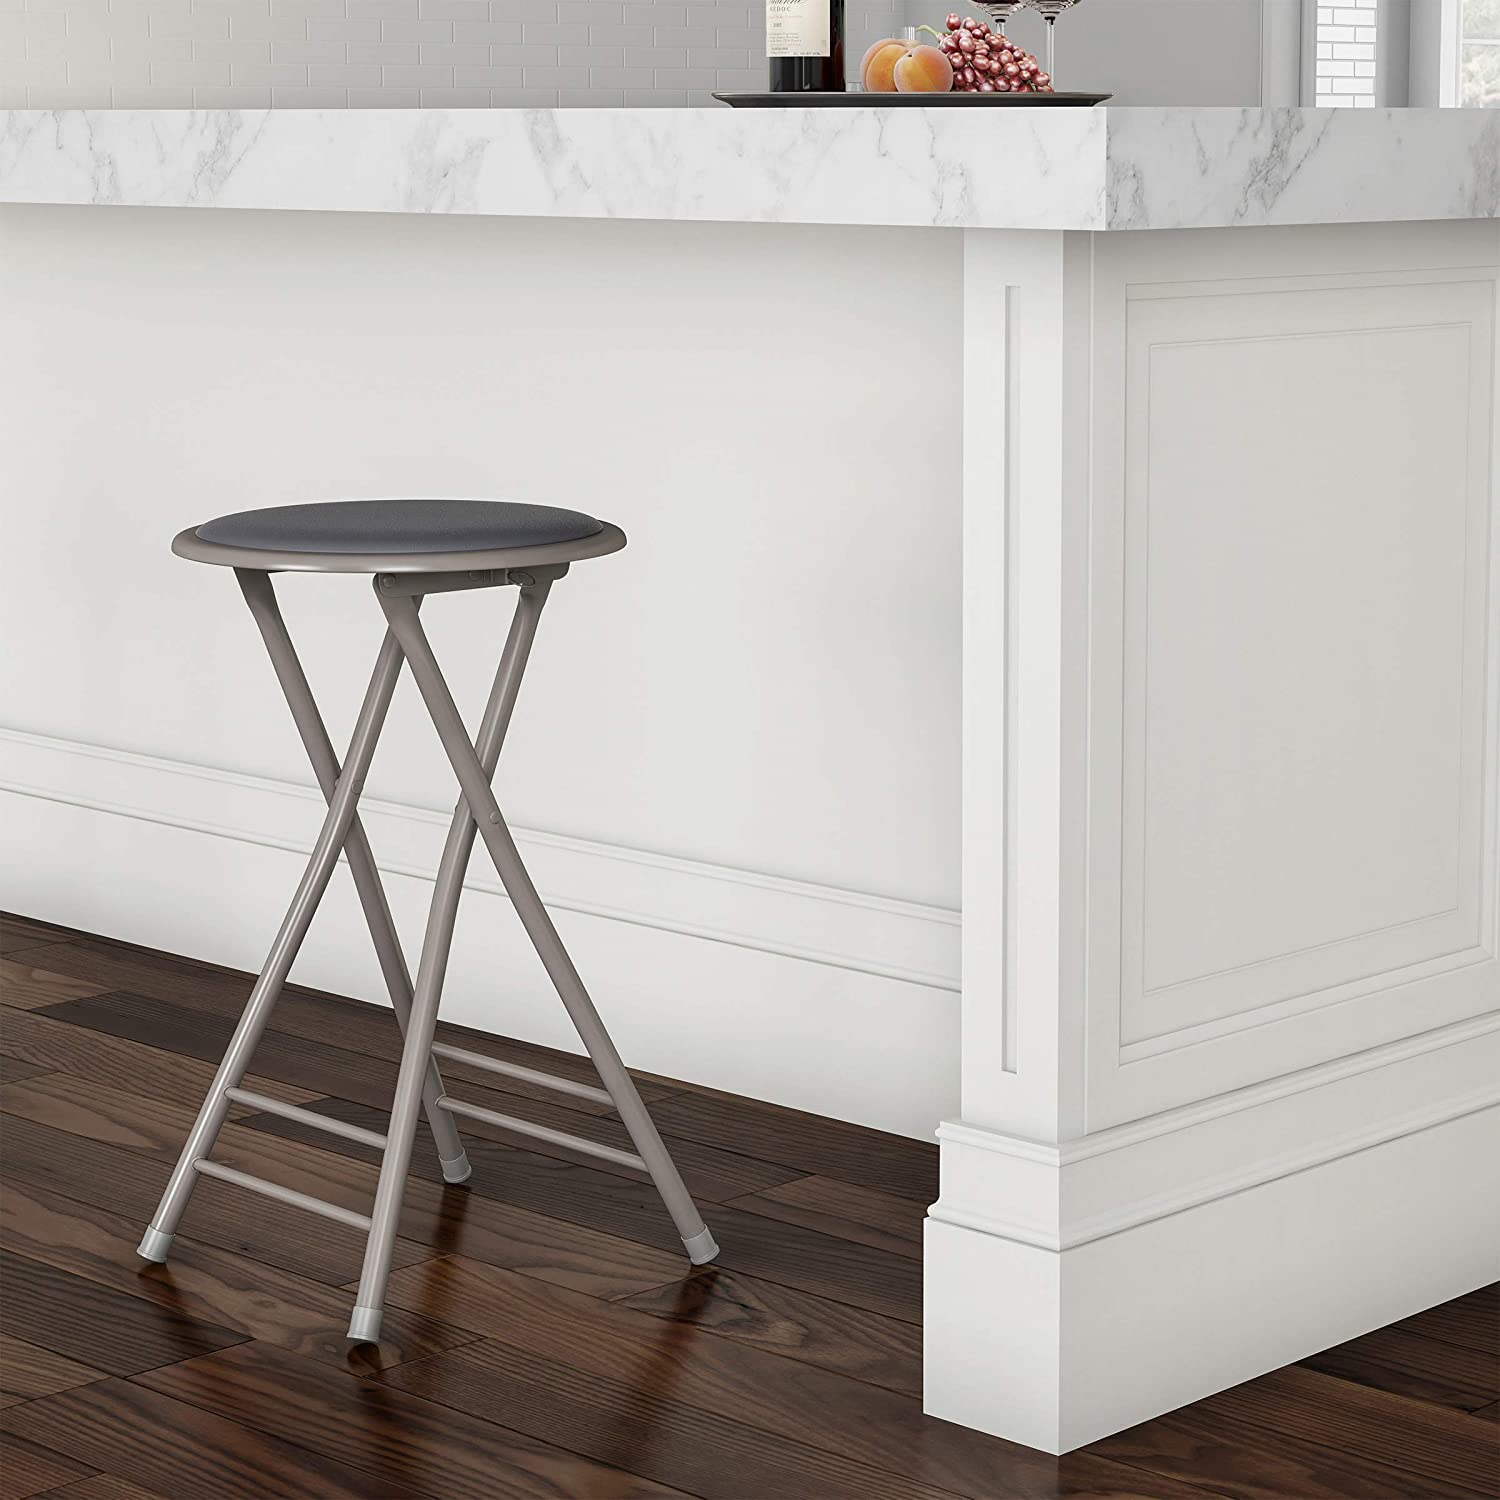 Trademark Home 82-0827-GY Folding Heavy Duty 24-Inch Collapsible Padded Round Stool, Gray